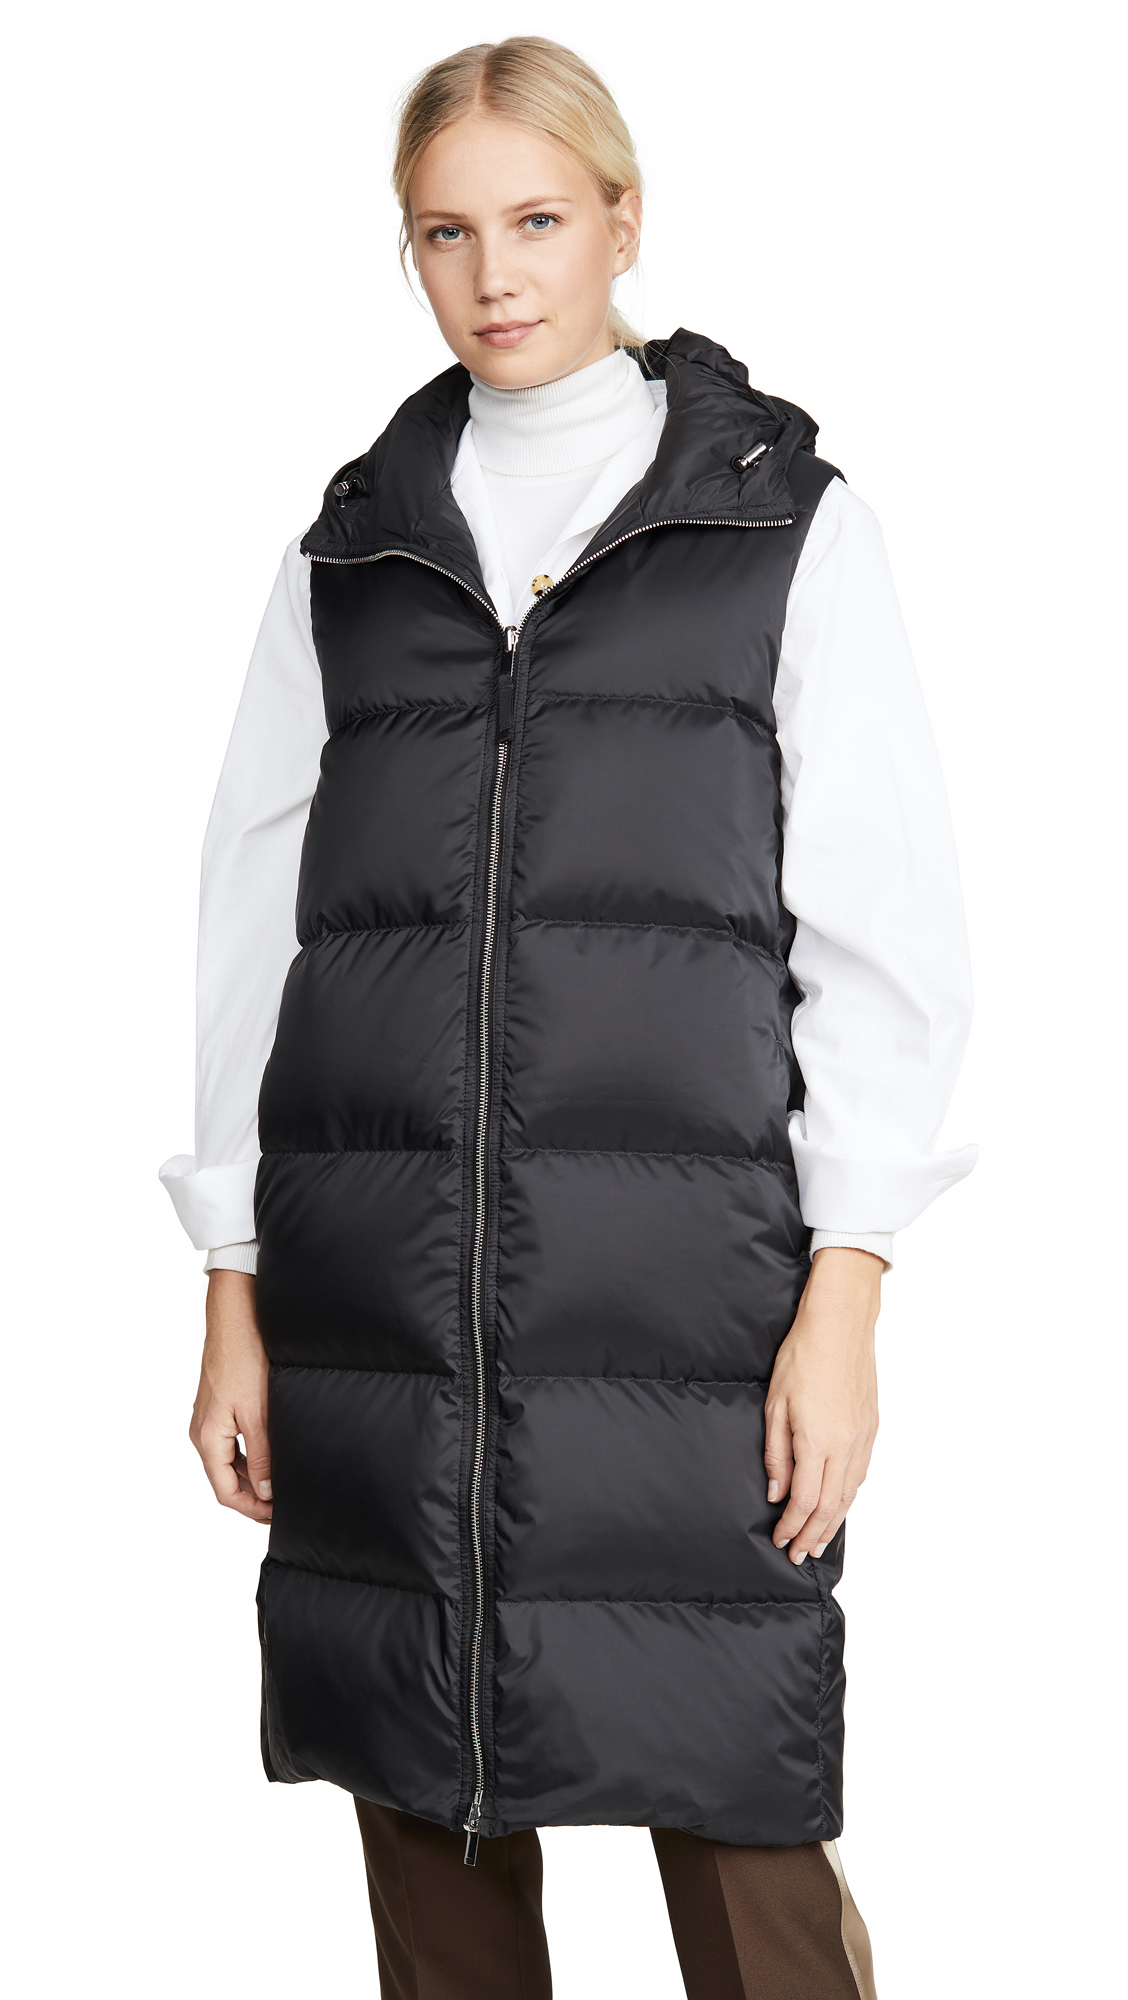 Buy Theory Puffer Vest online beautiful Theory Jackets, Coats, Down Jackets